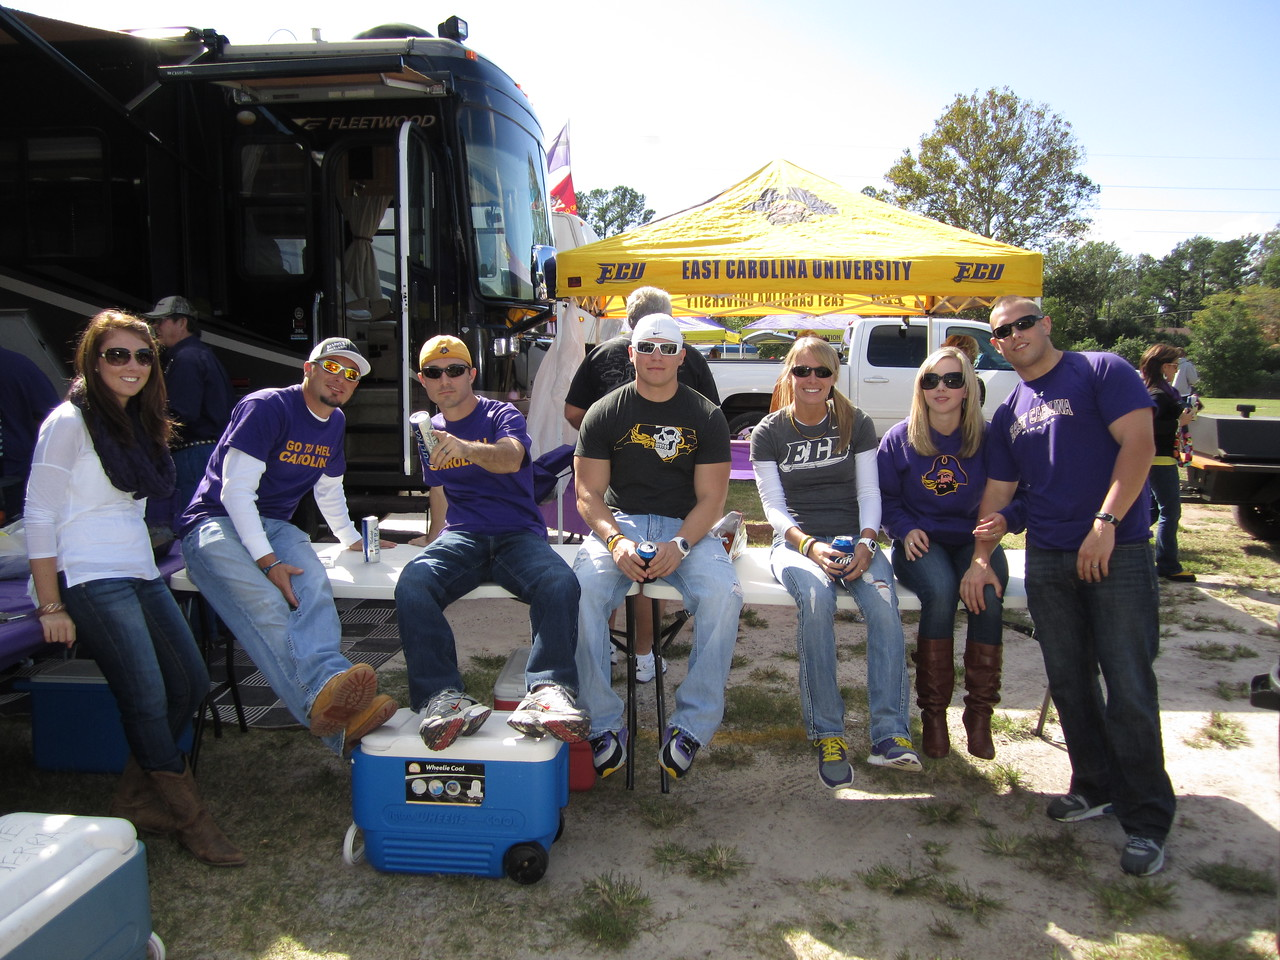 10/1/2011 ECU vs North Carolina  Nikki, Chris W, Rob, Kristin, ,